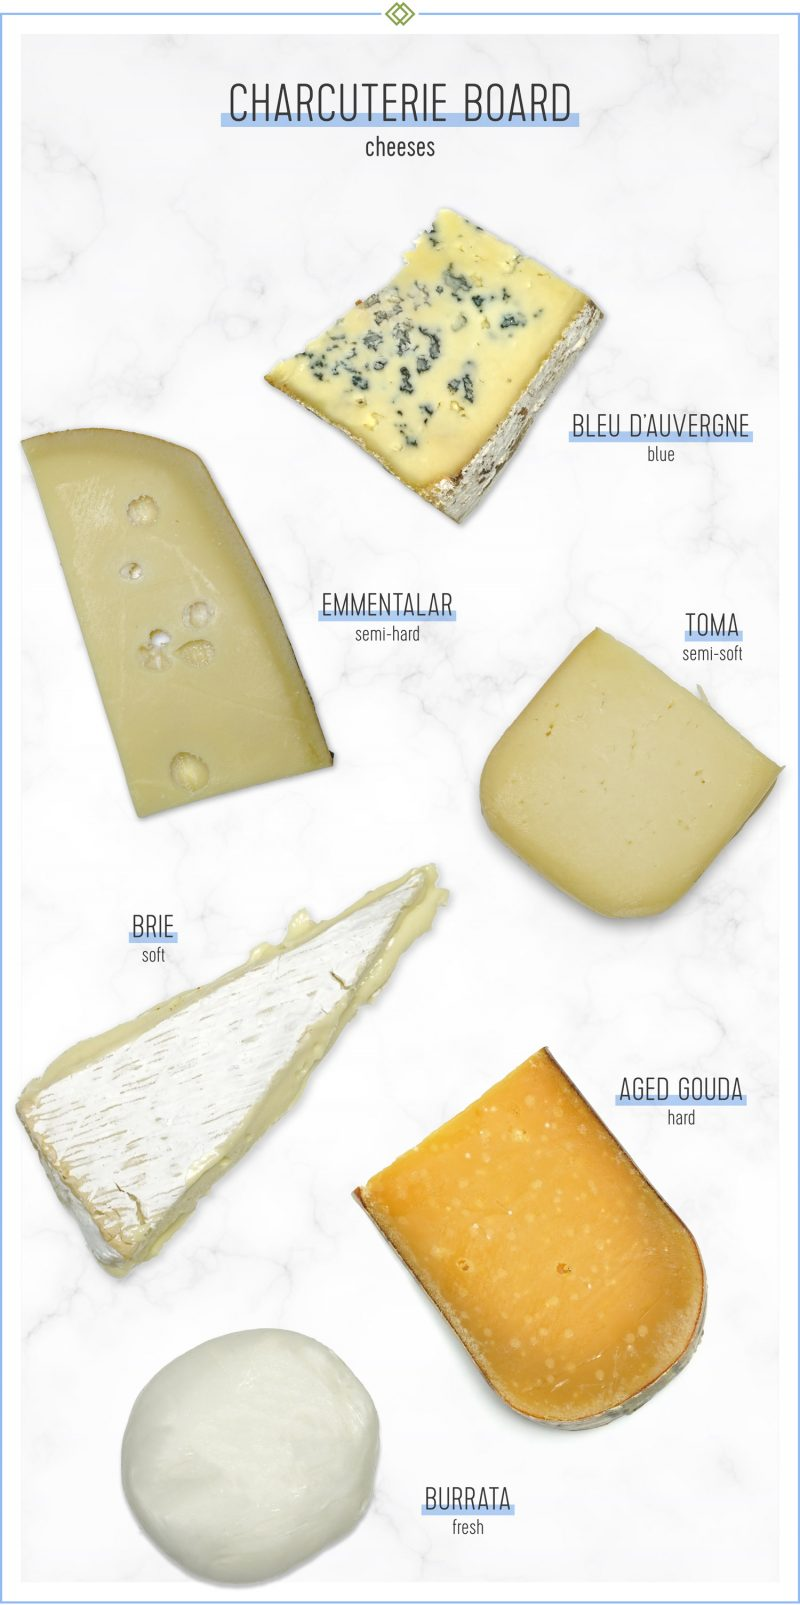 charcuterie Board cheese options